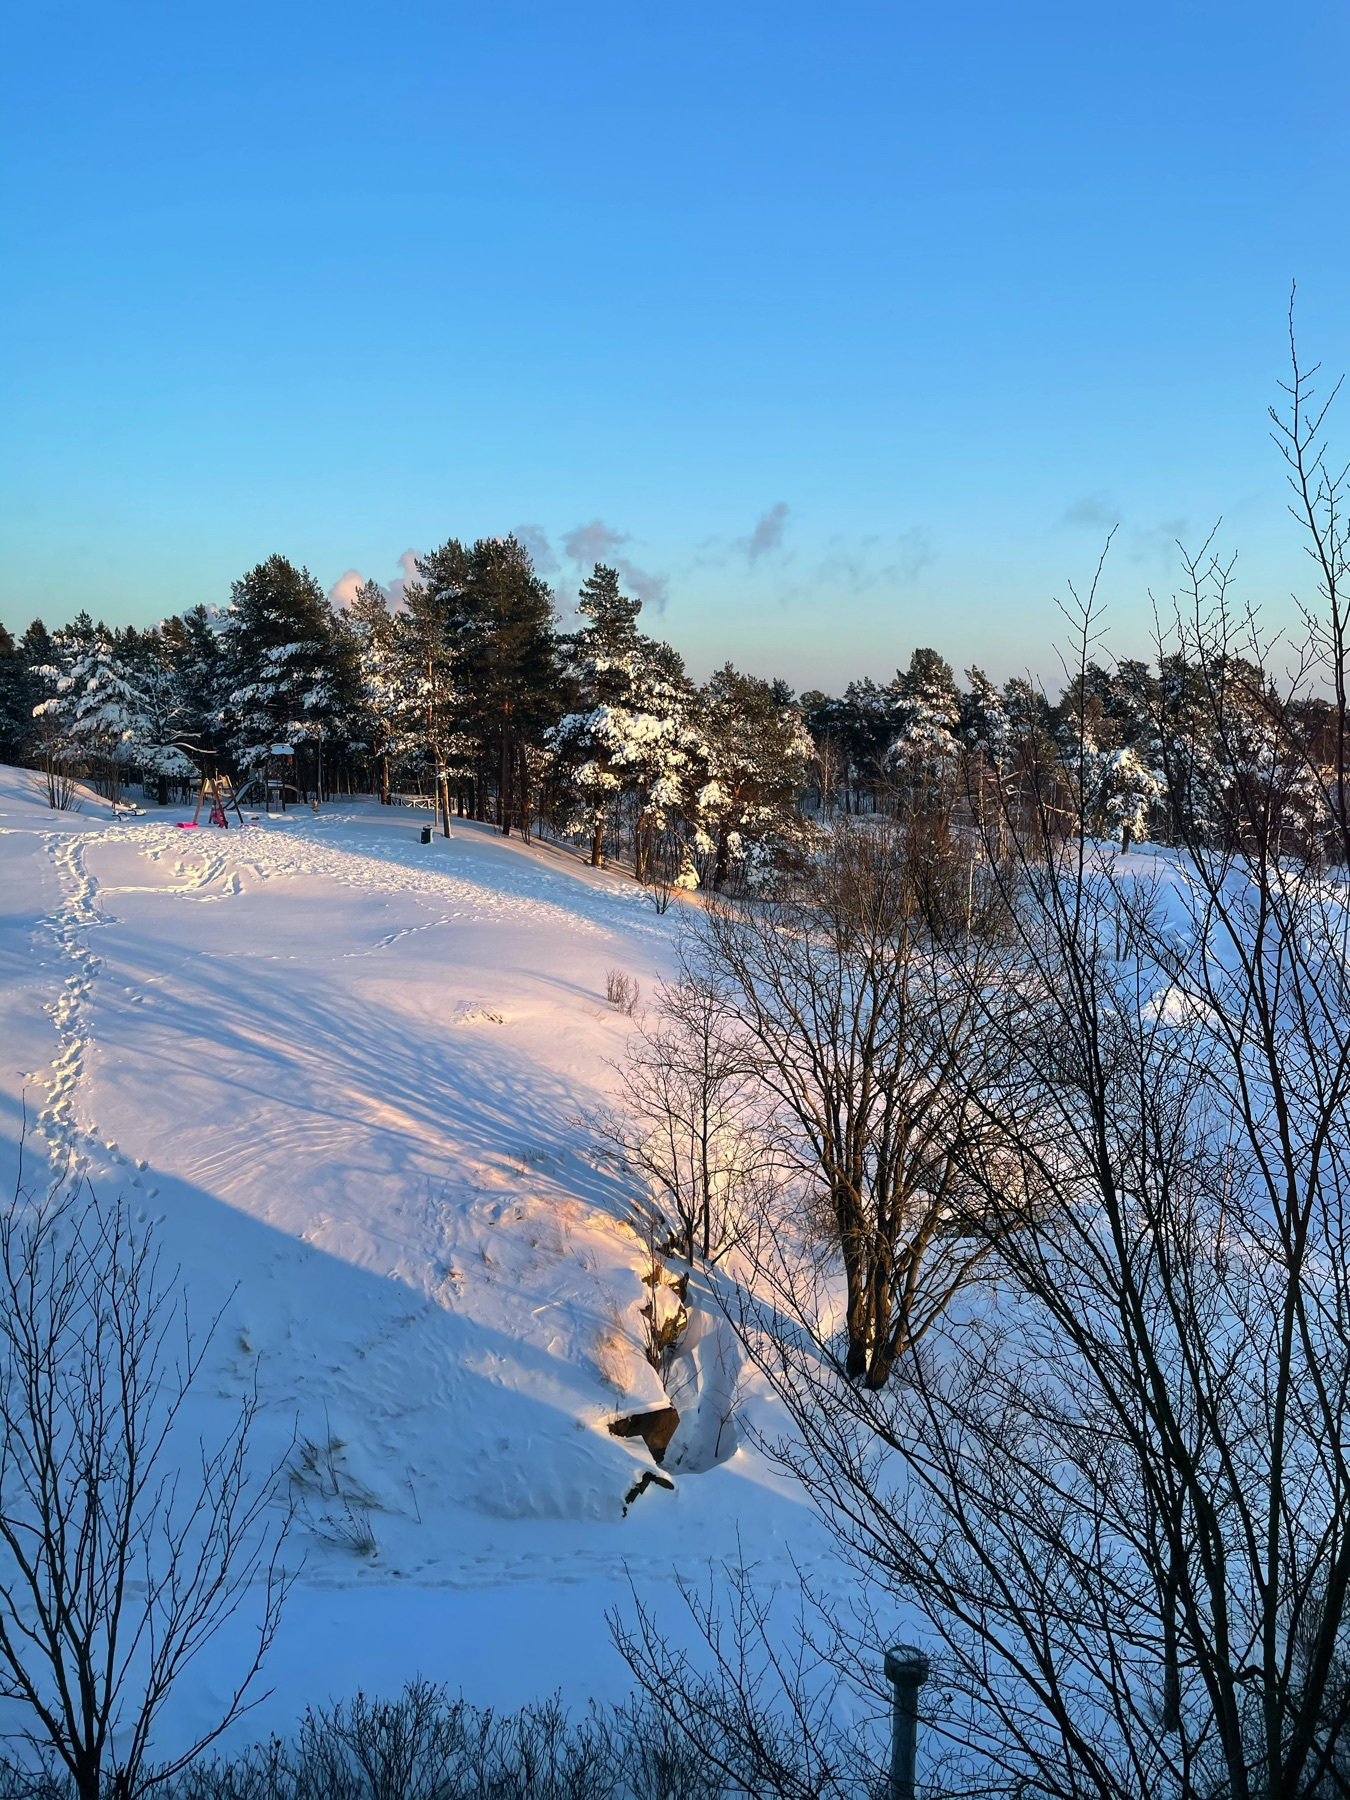 view out of the window to a snowy hill, sun, shadows, crisp snow